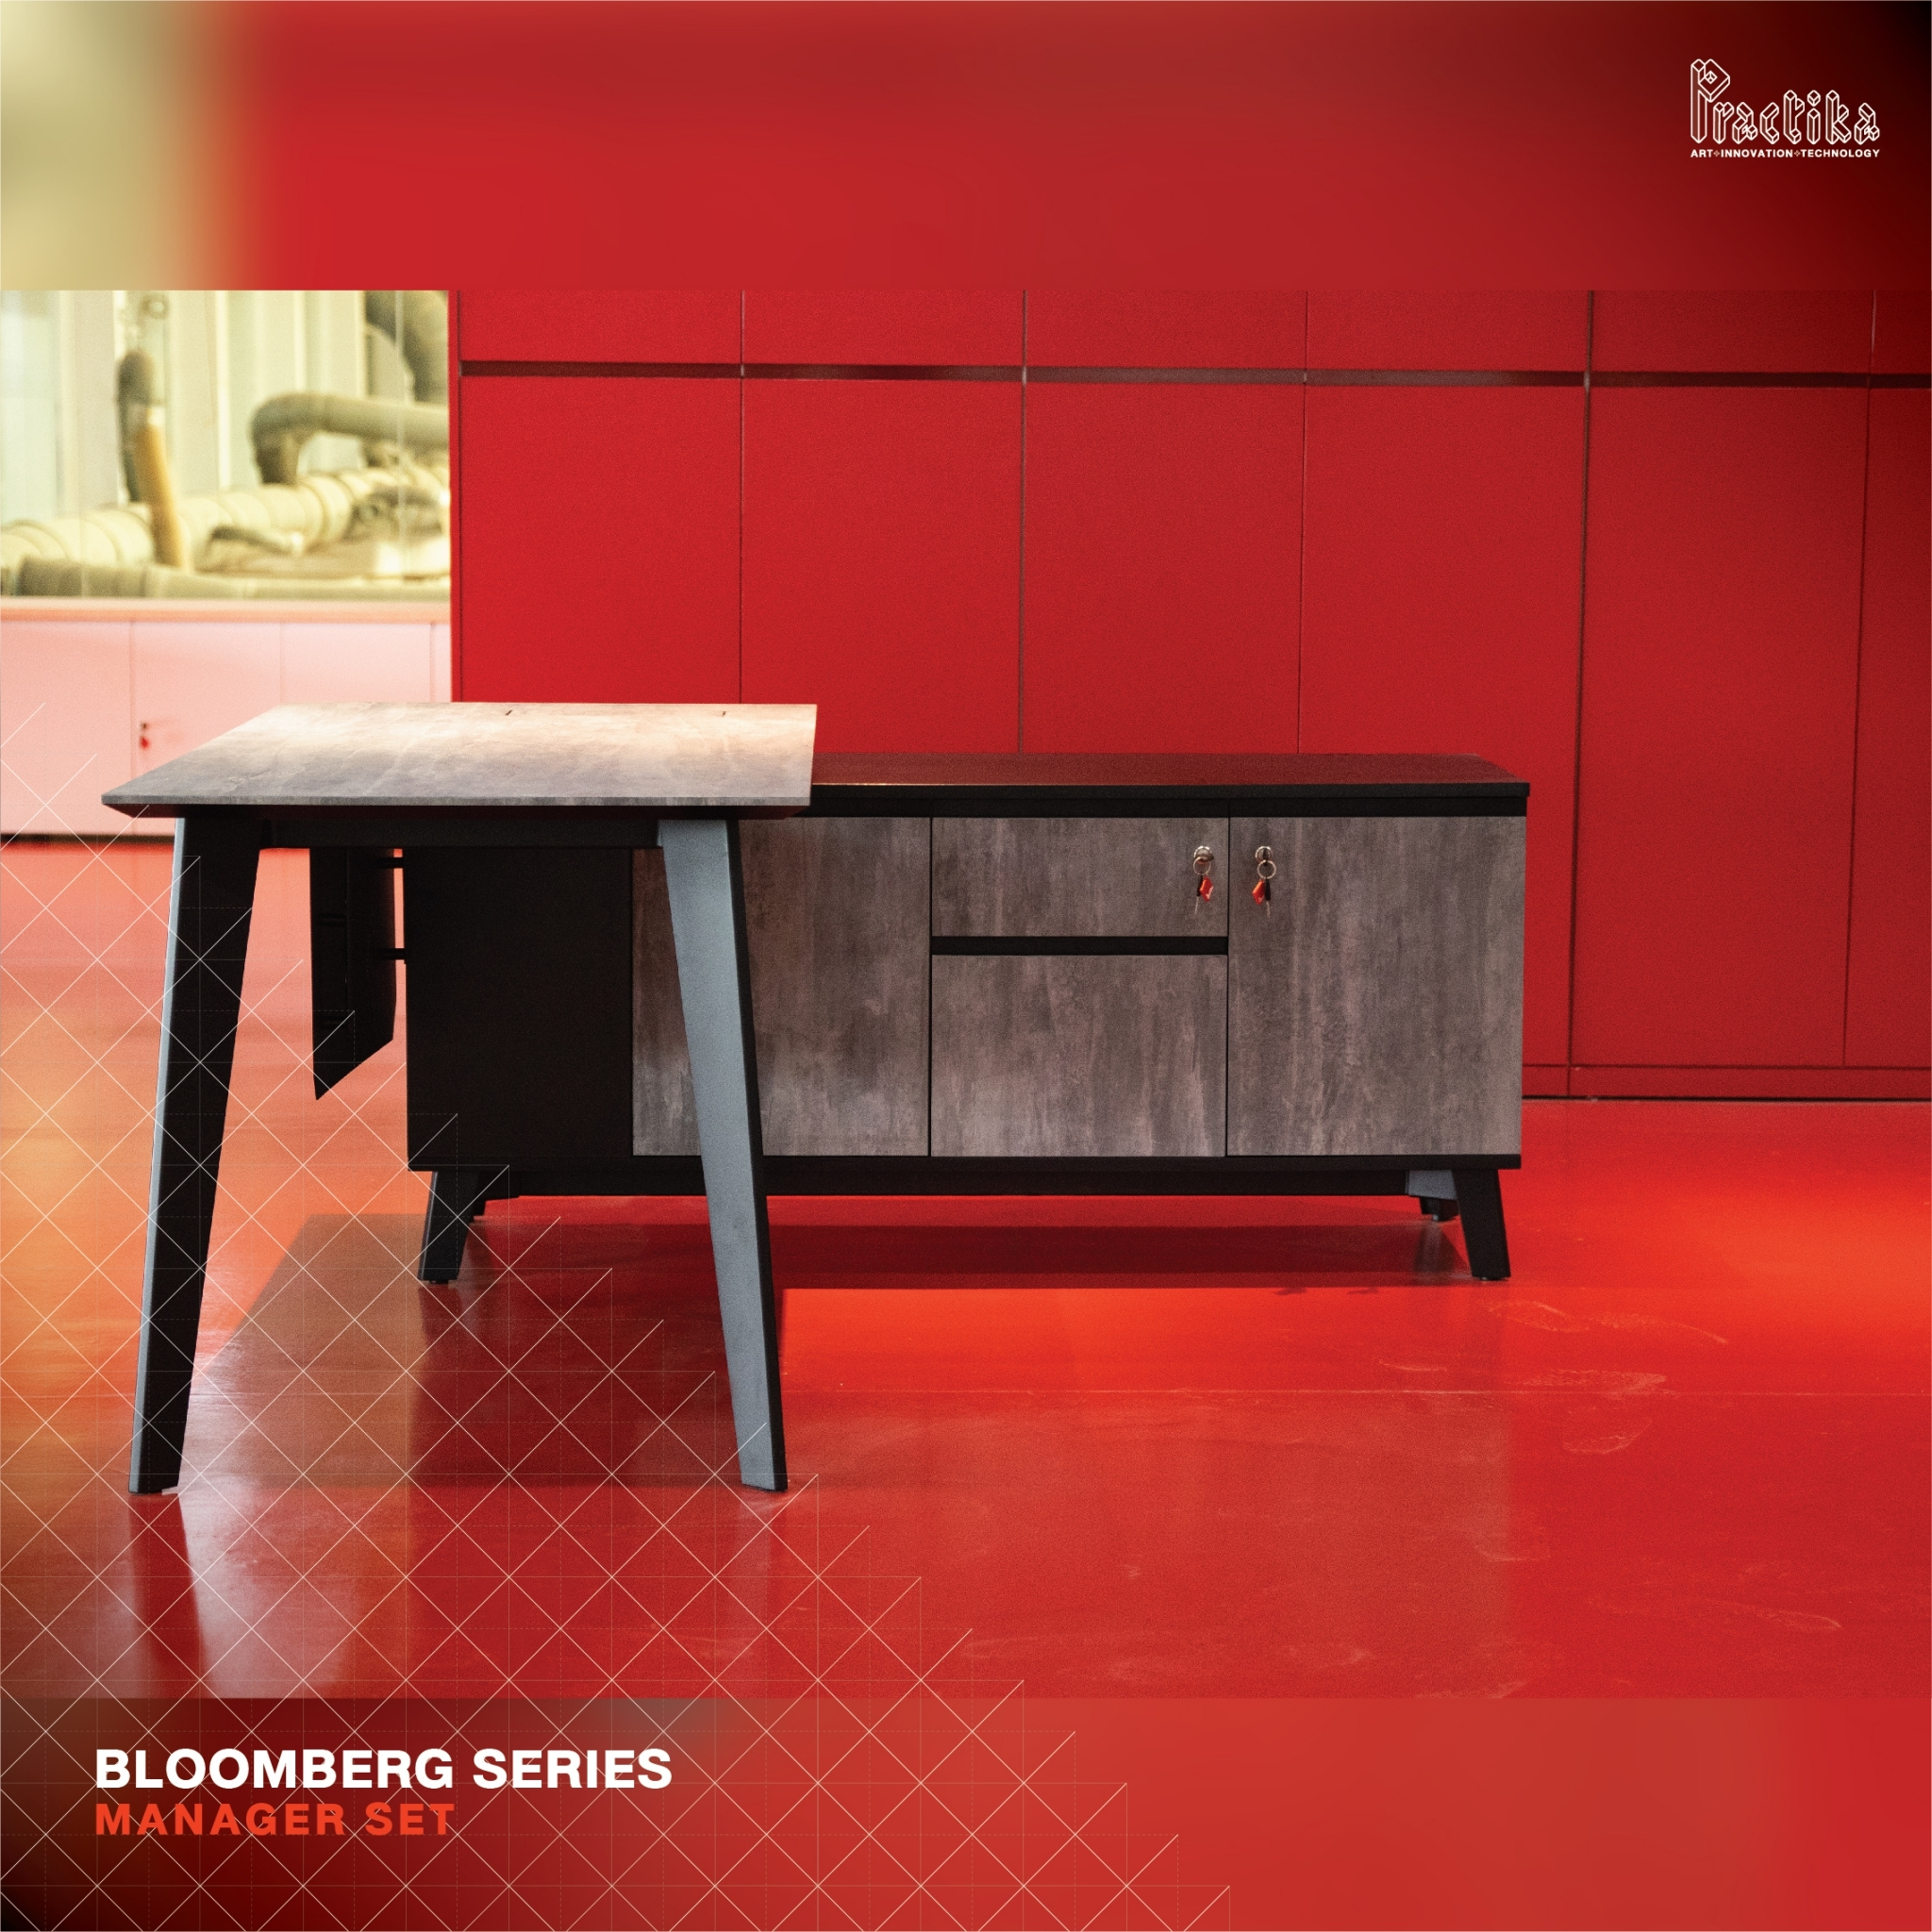 BLOOMBERG SERIES - MANAGER WORKSTATION